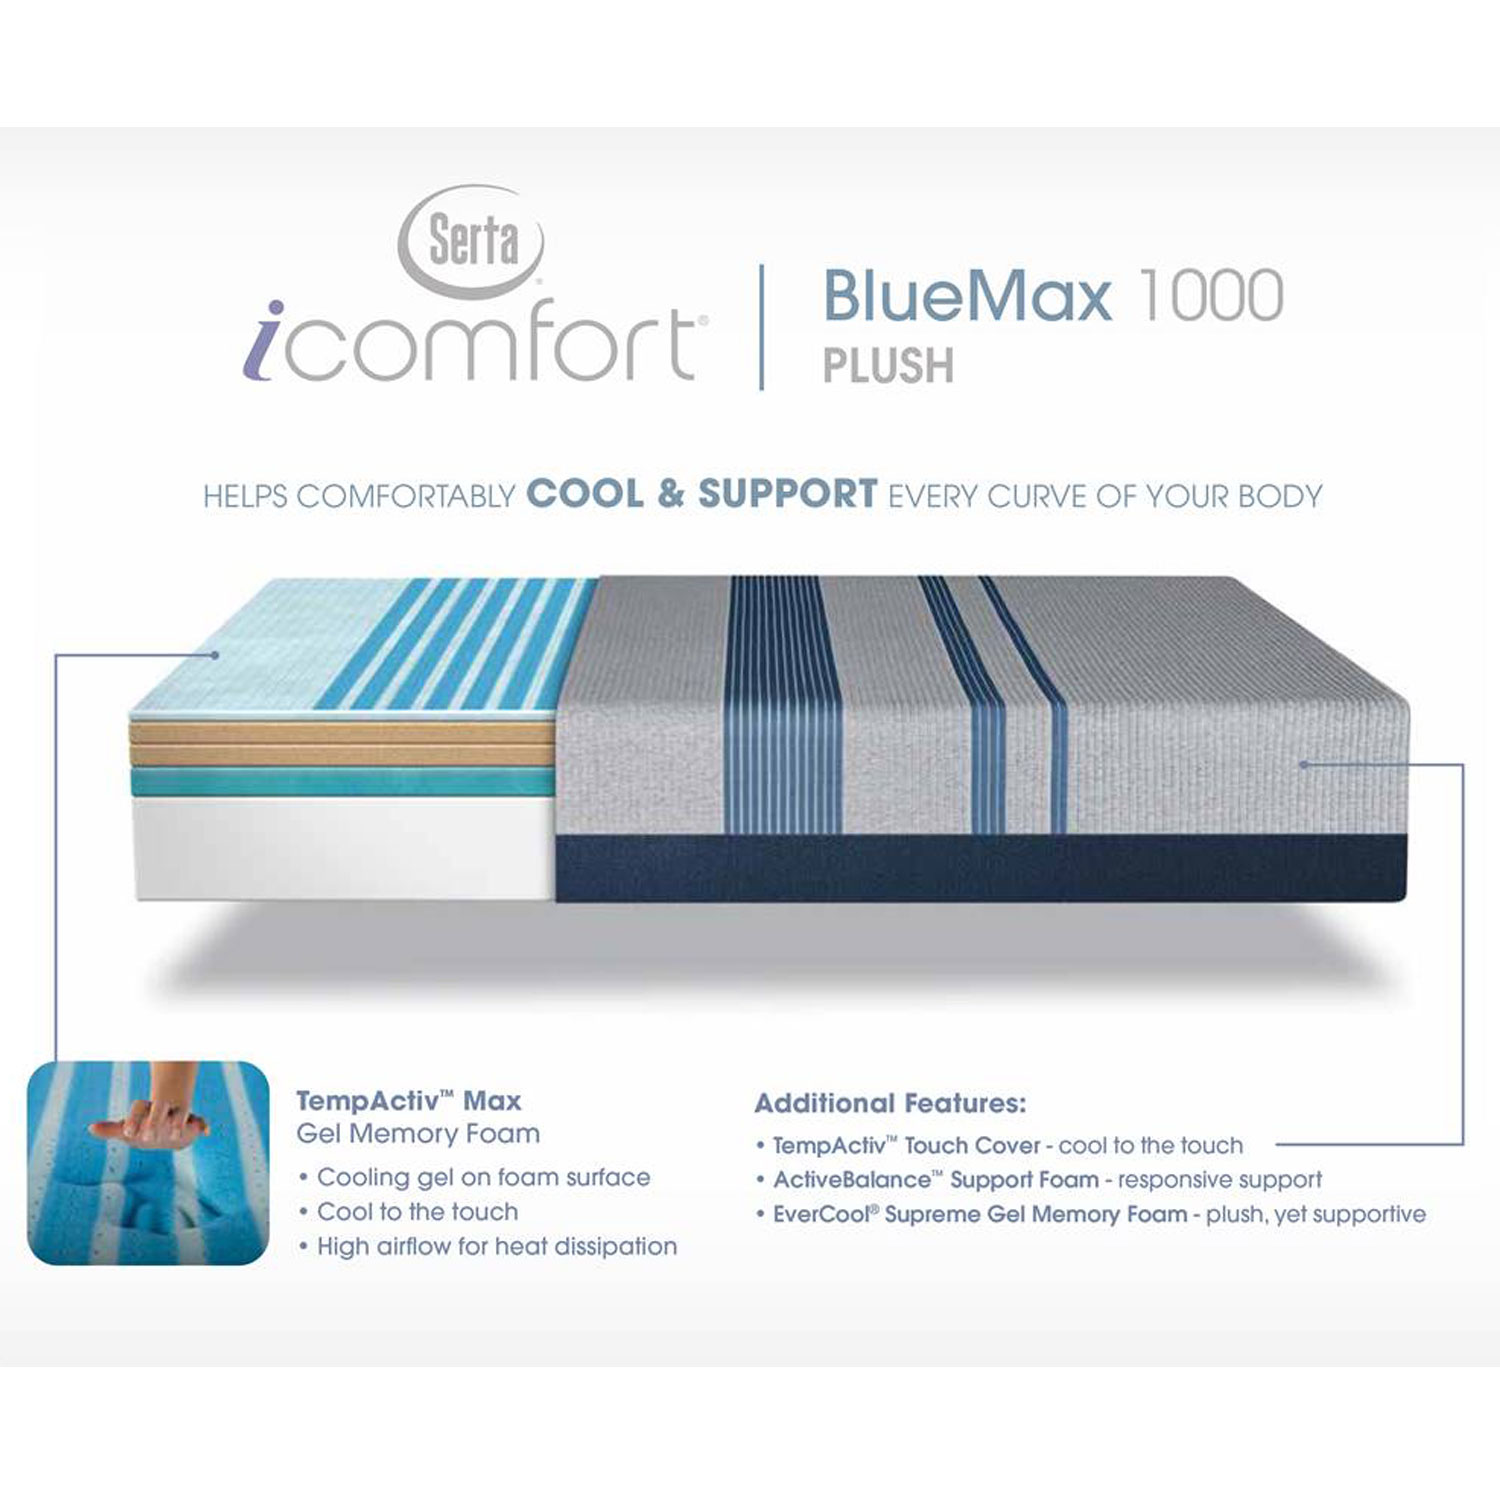 Serta Icomfort Blue Max 1000 Plush Hope Home Furnishings